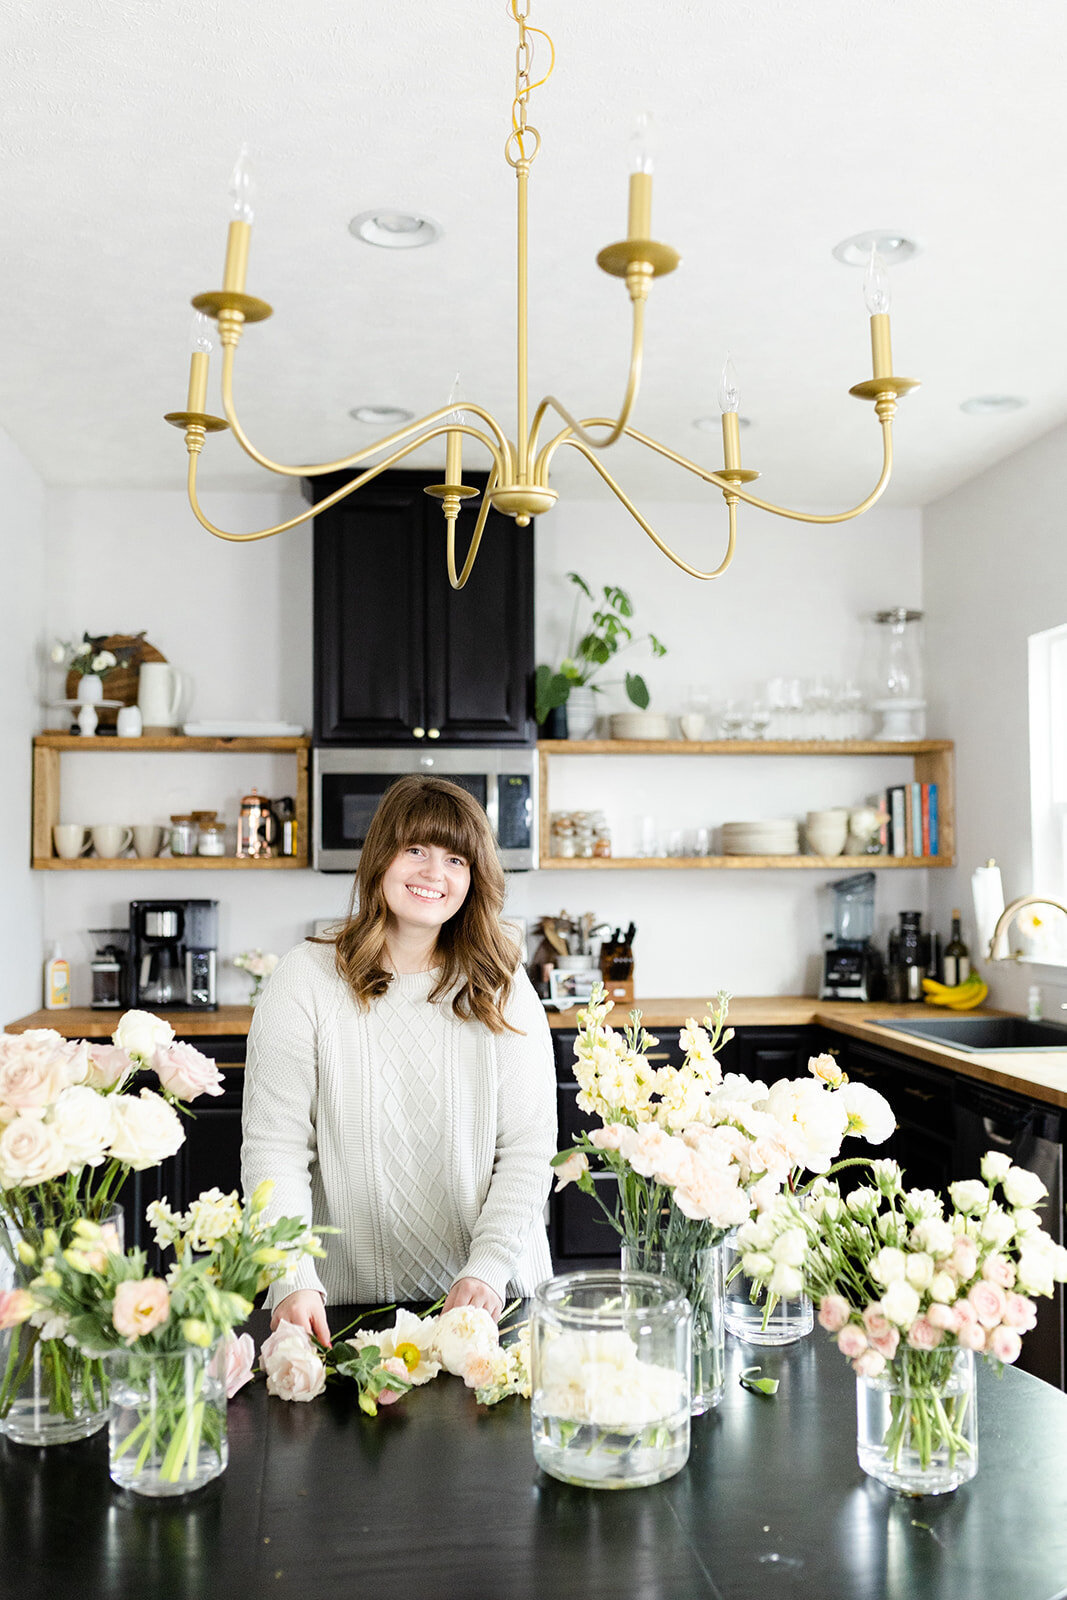 Florist standing with flowers for brand photos